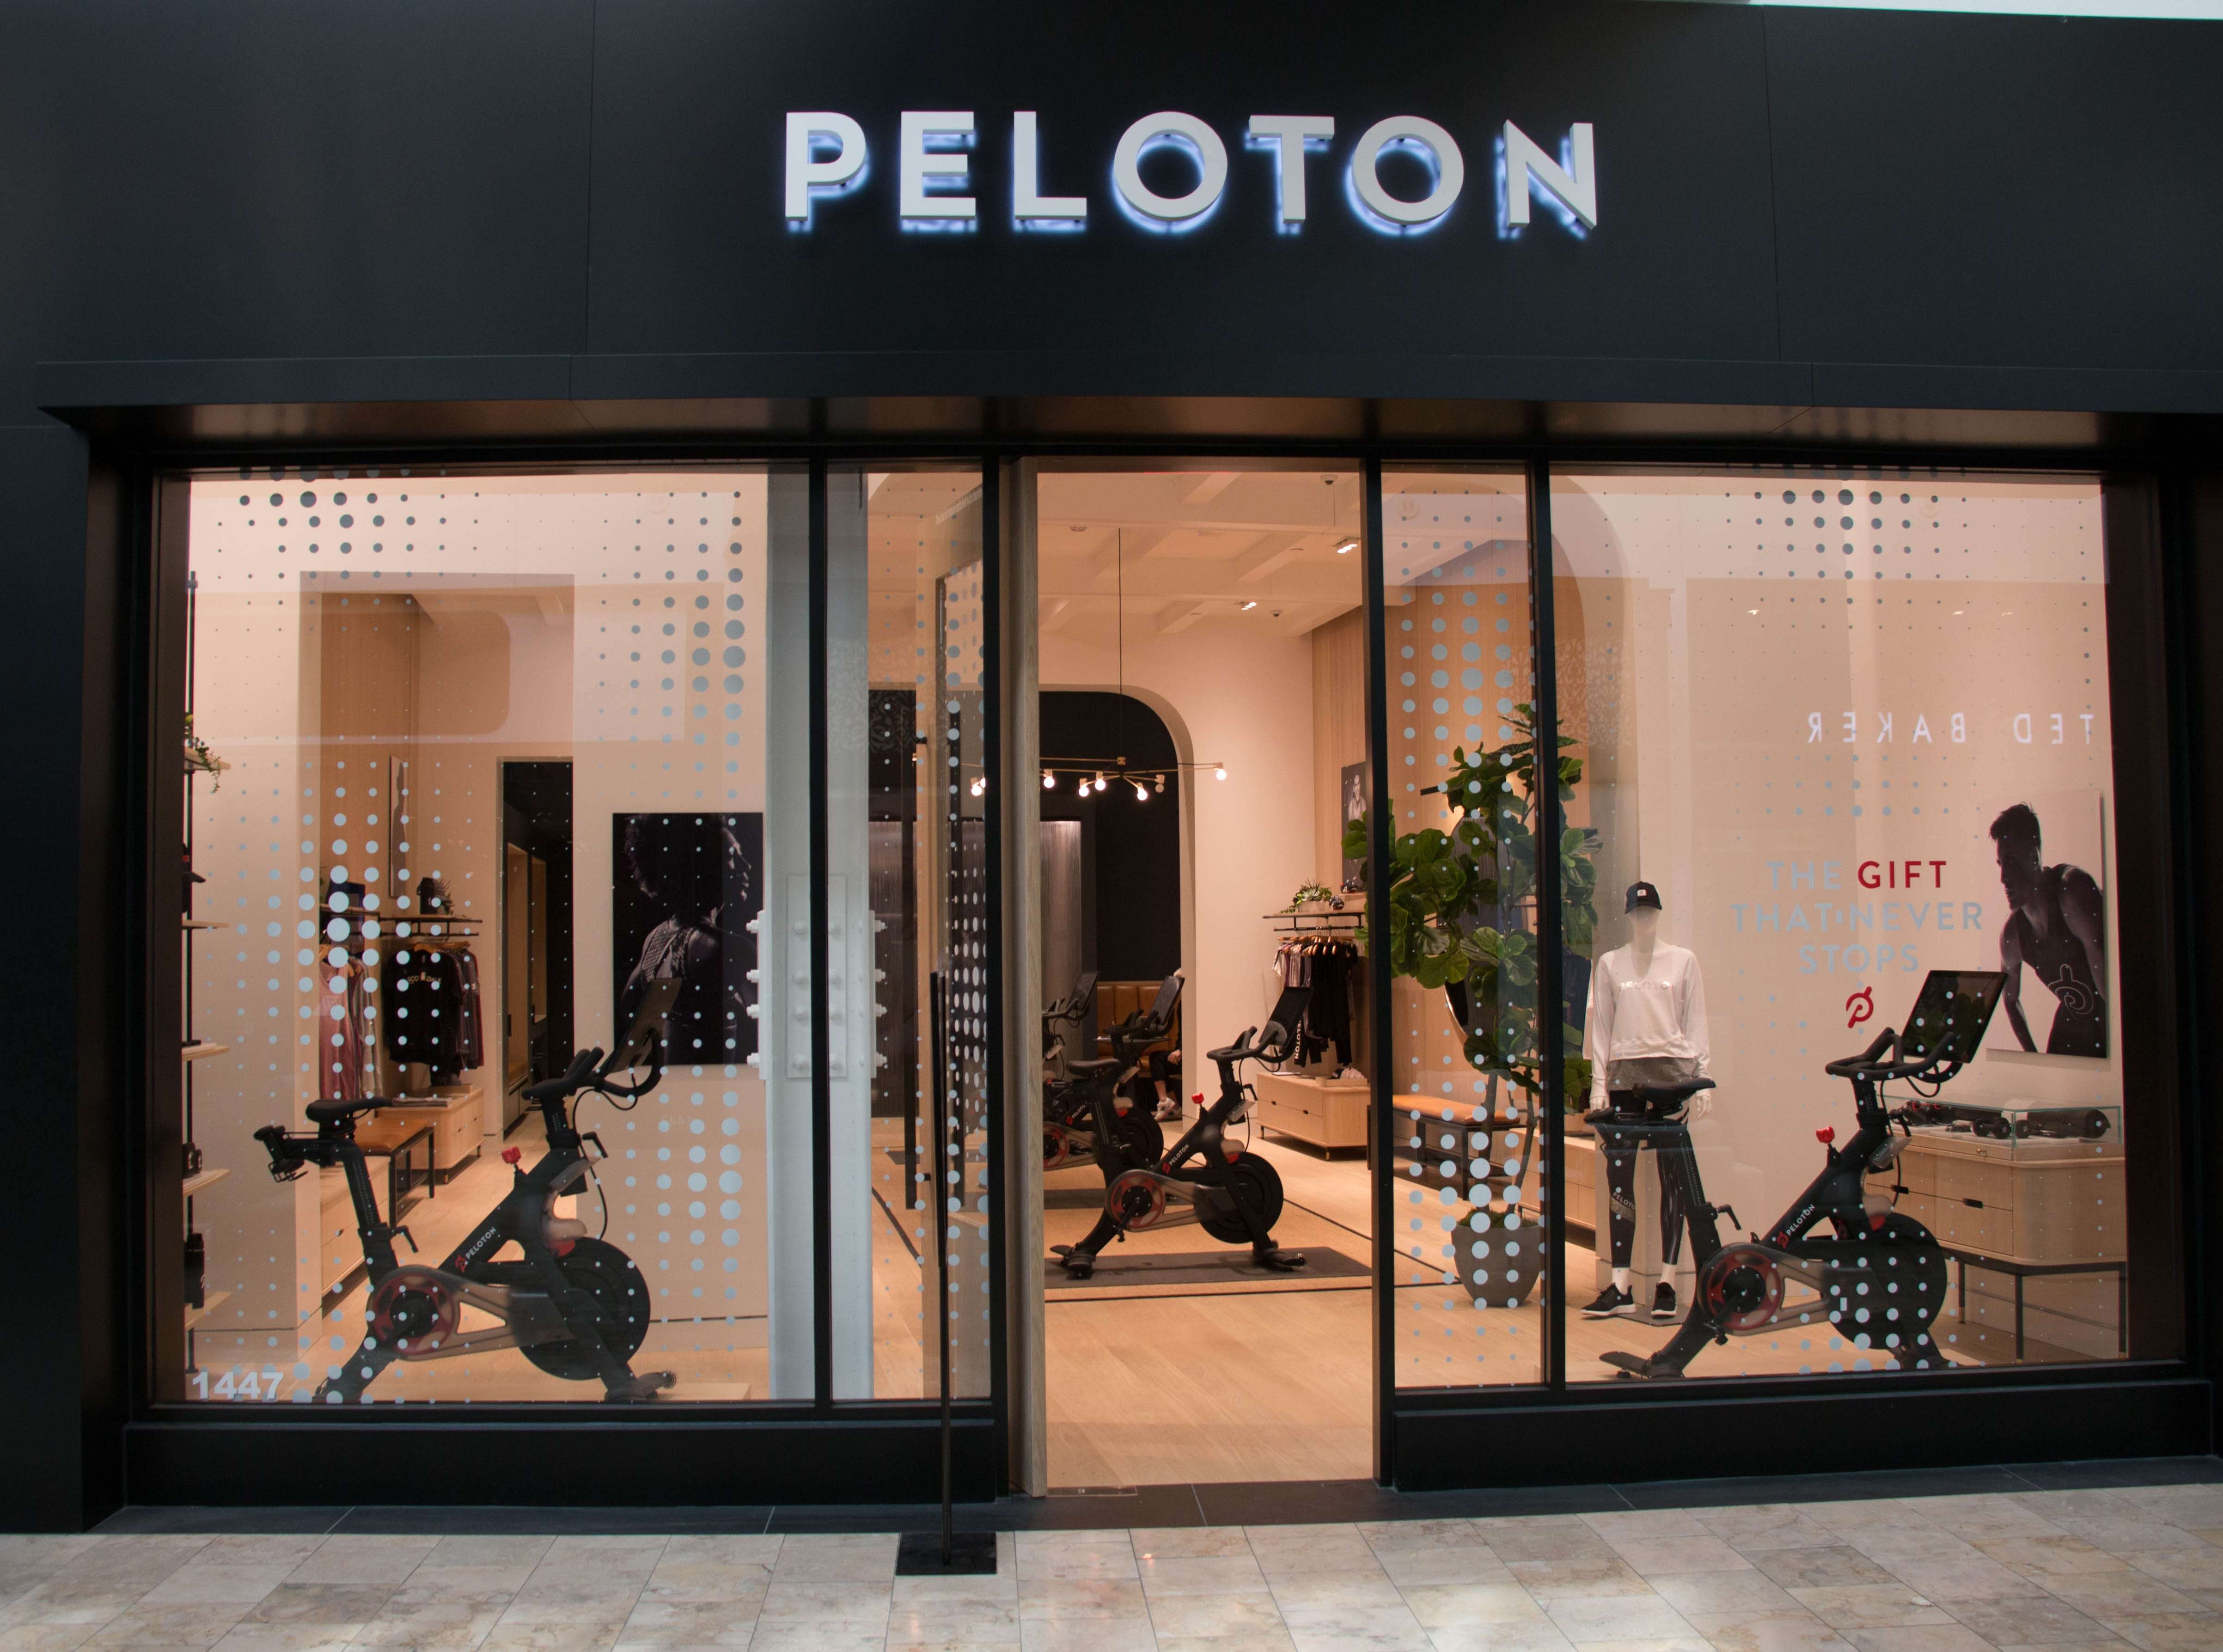 Peloton, which sells exercise bikes and equipment, opened a store in Scottsdale Fashion Square's luxury wing.